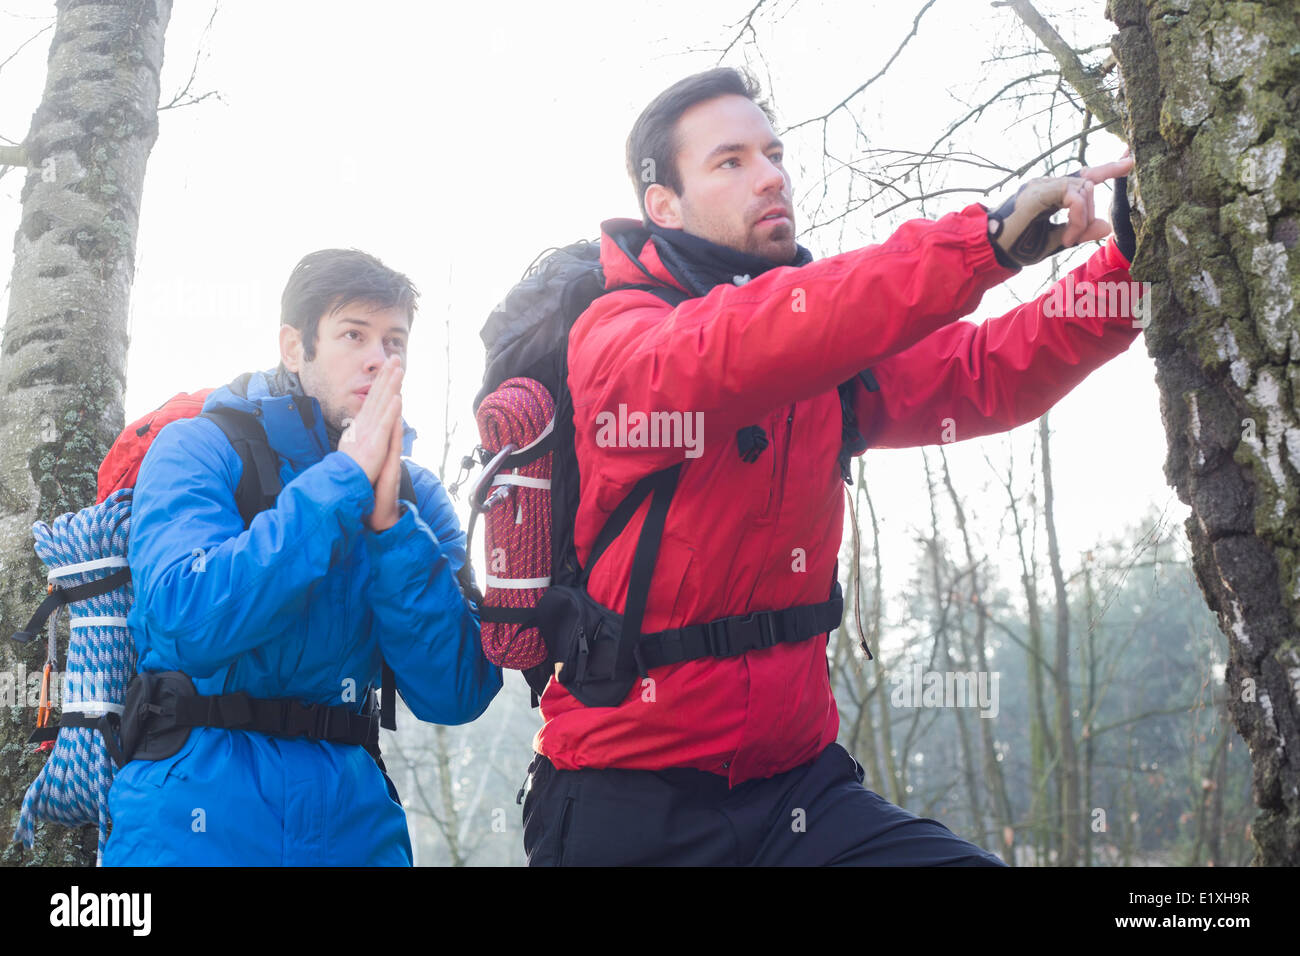 Male hikers exploring tree trunk in forest - Stock Image